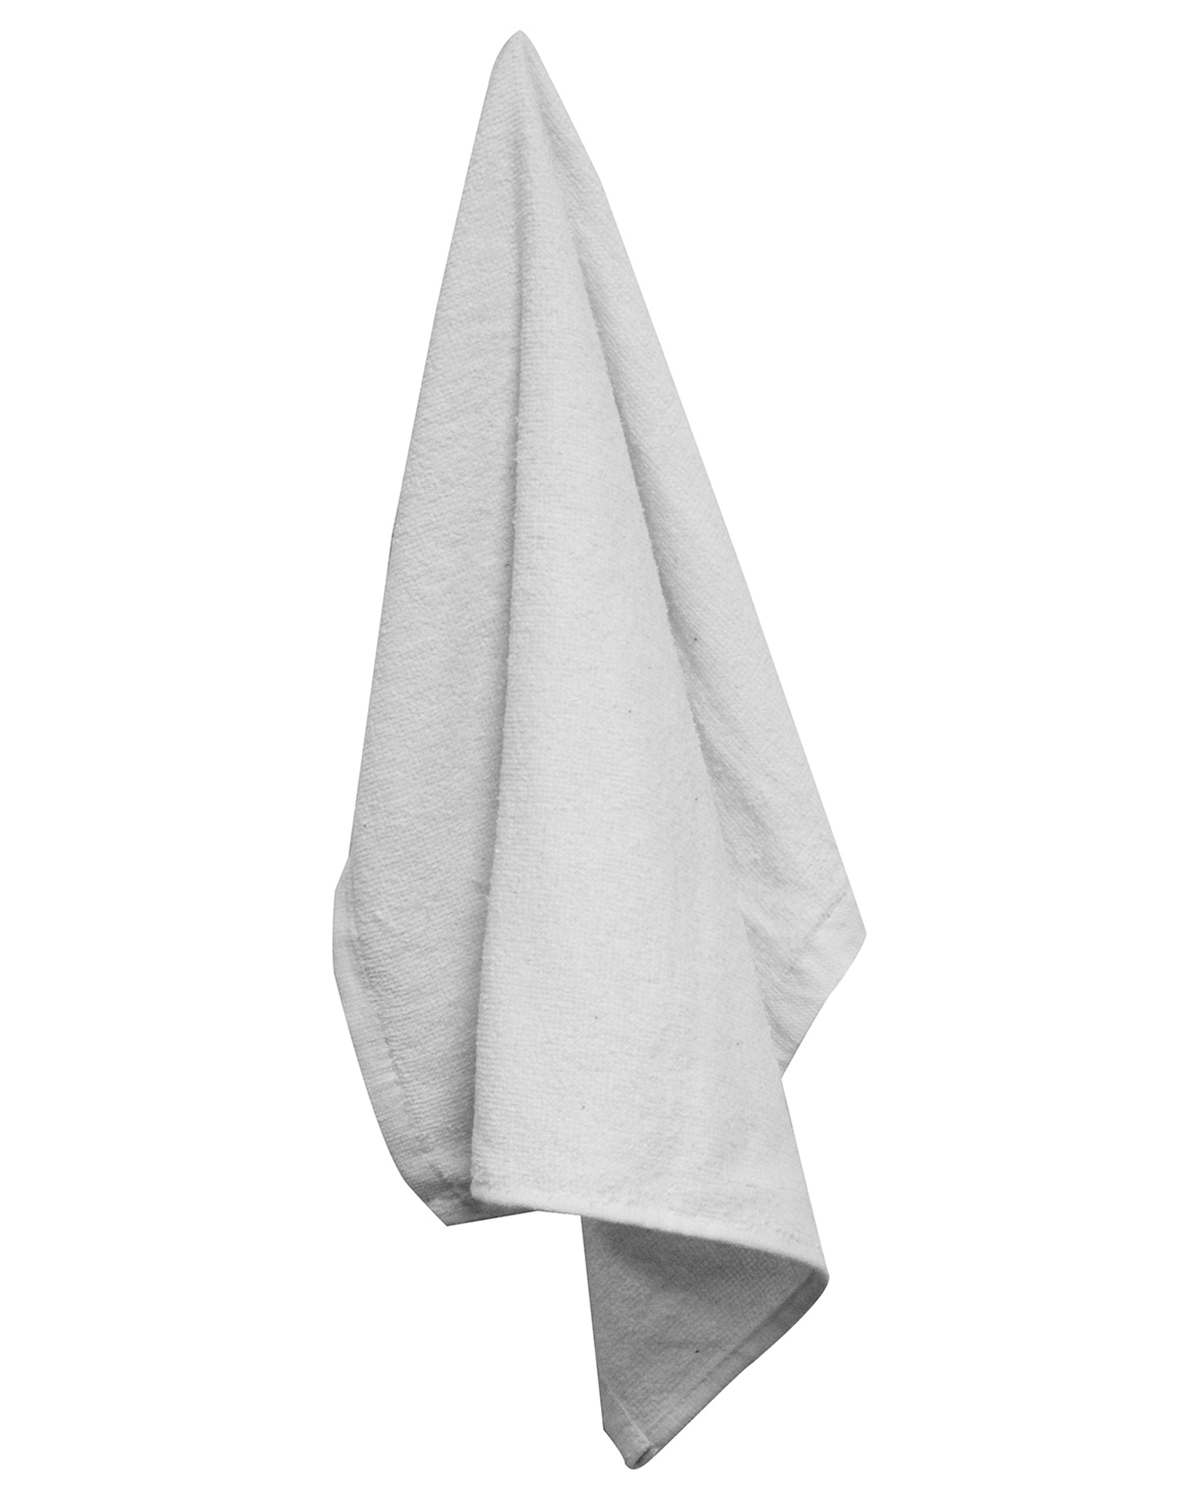 Carmel Towel Company C1518 Unisex Large Rally  at GotApparel